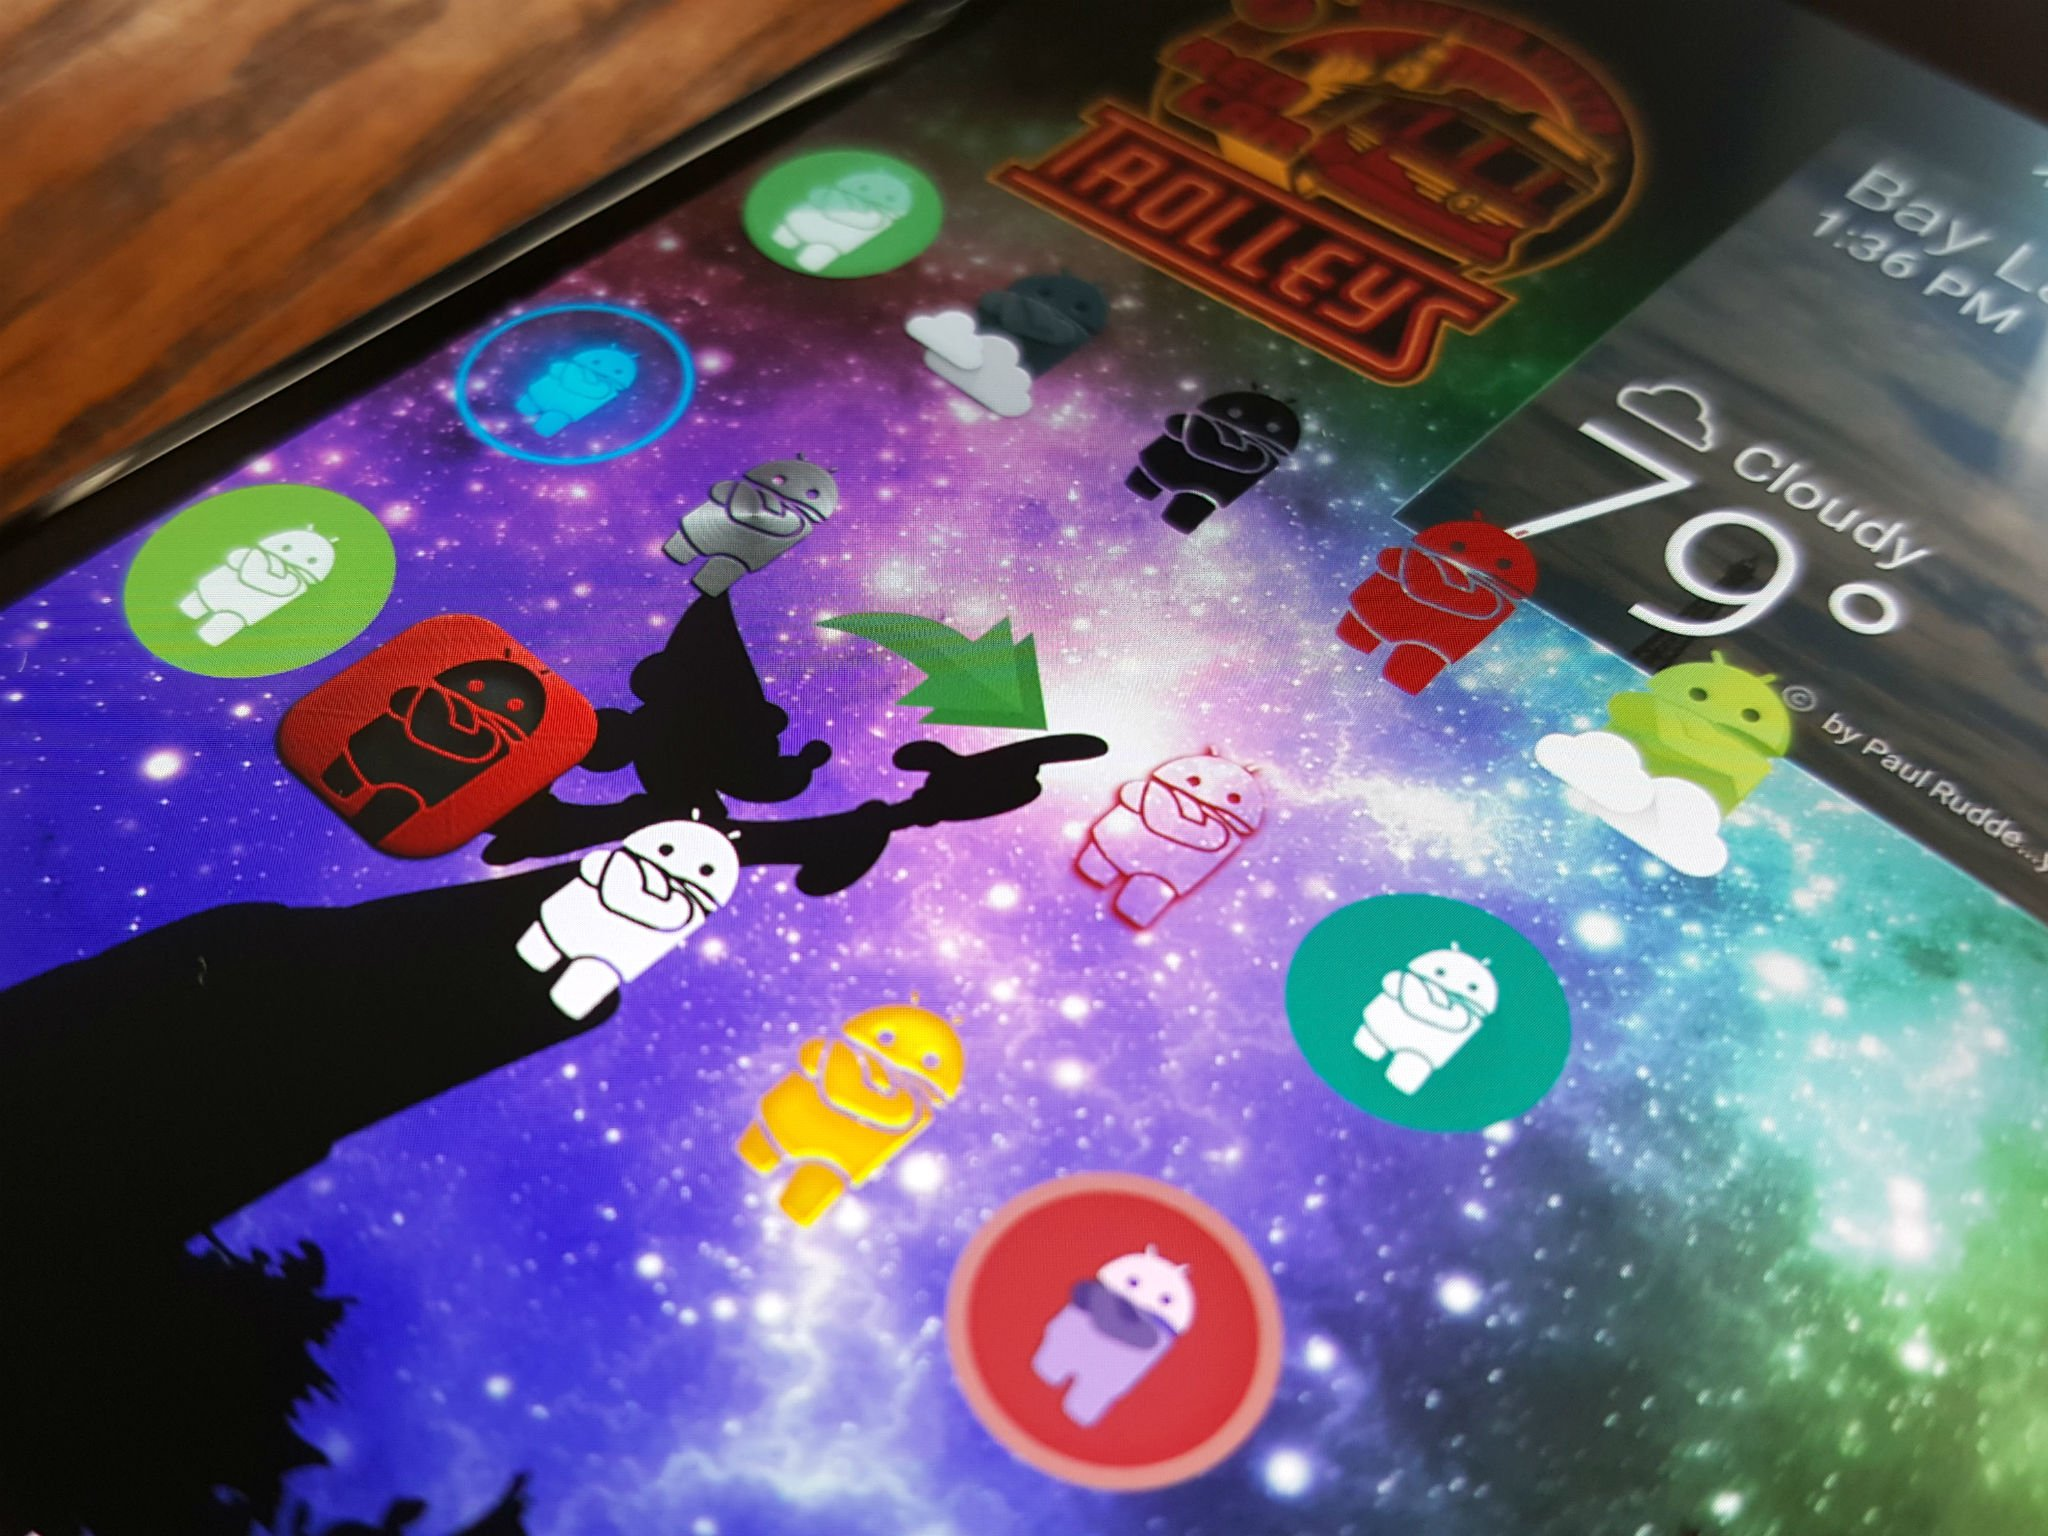 how to change icon in android application